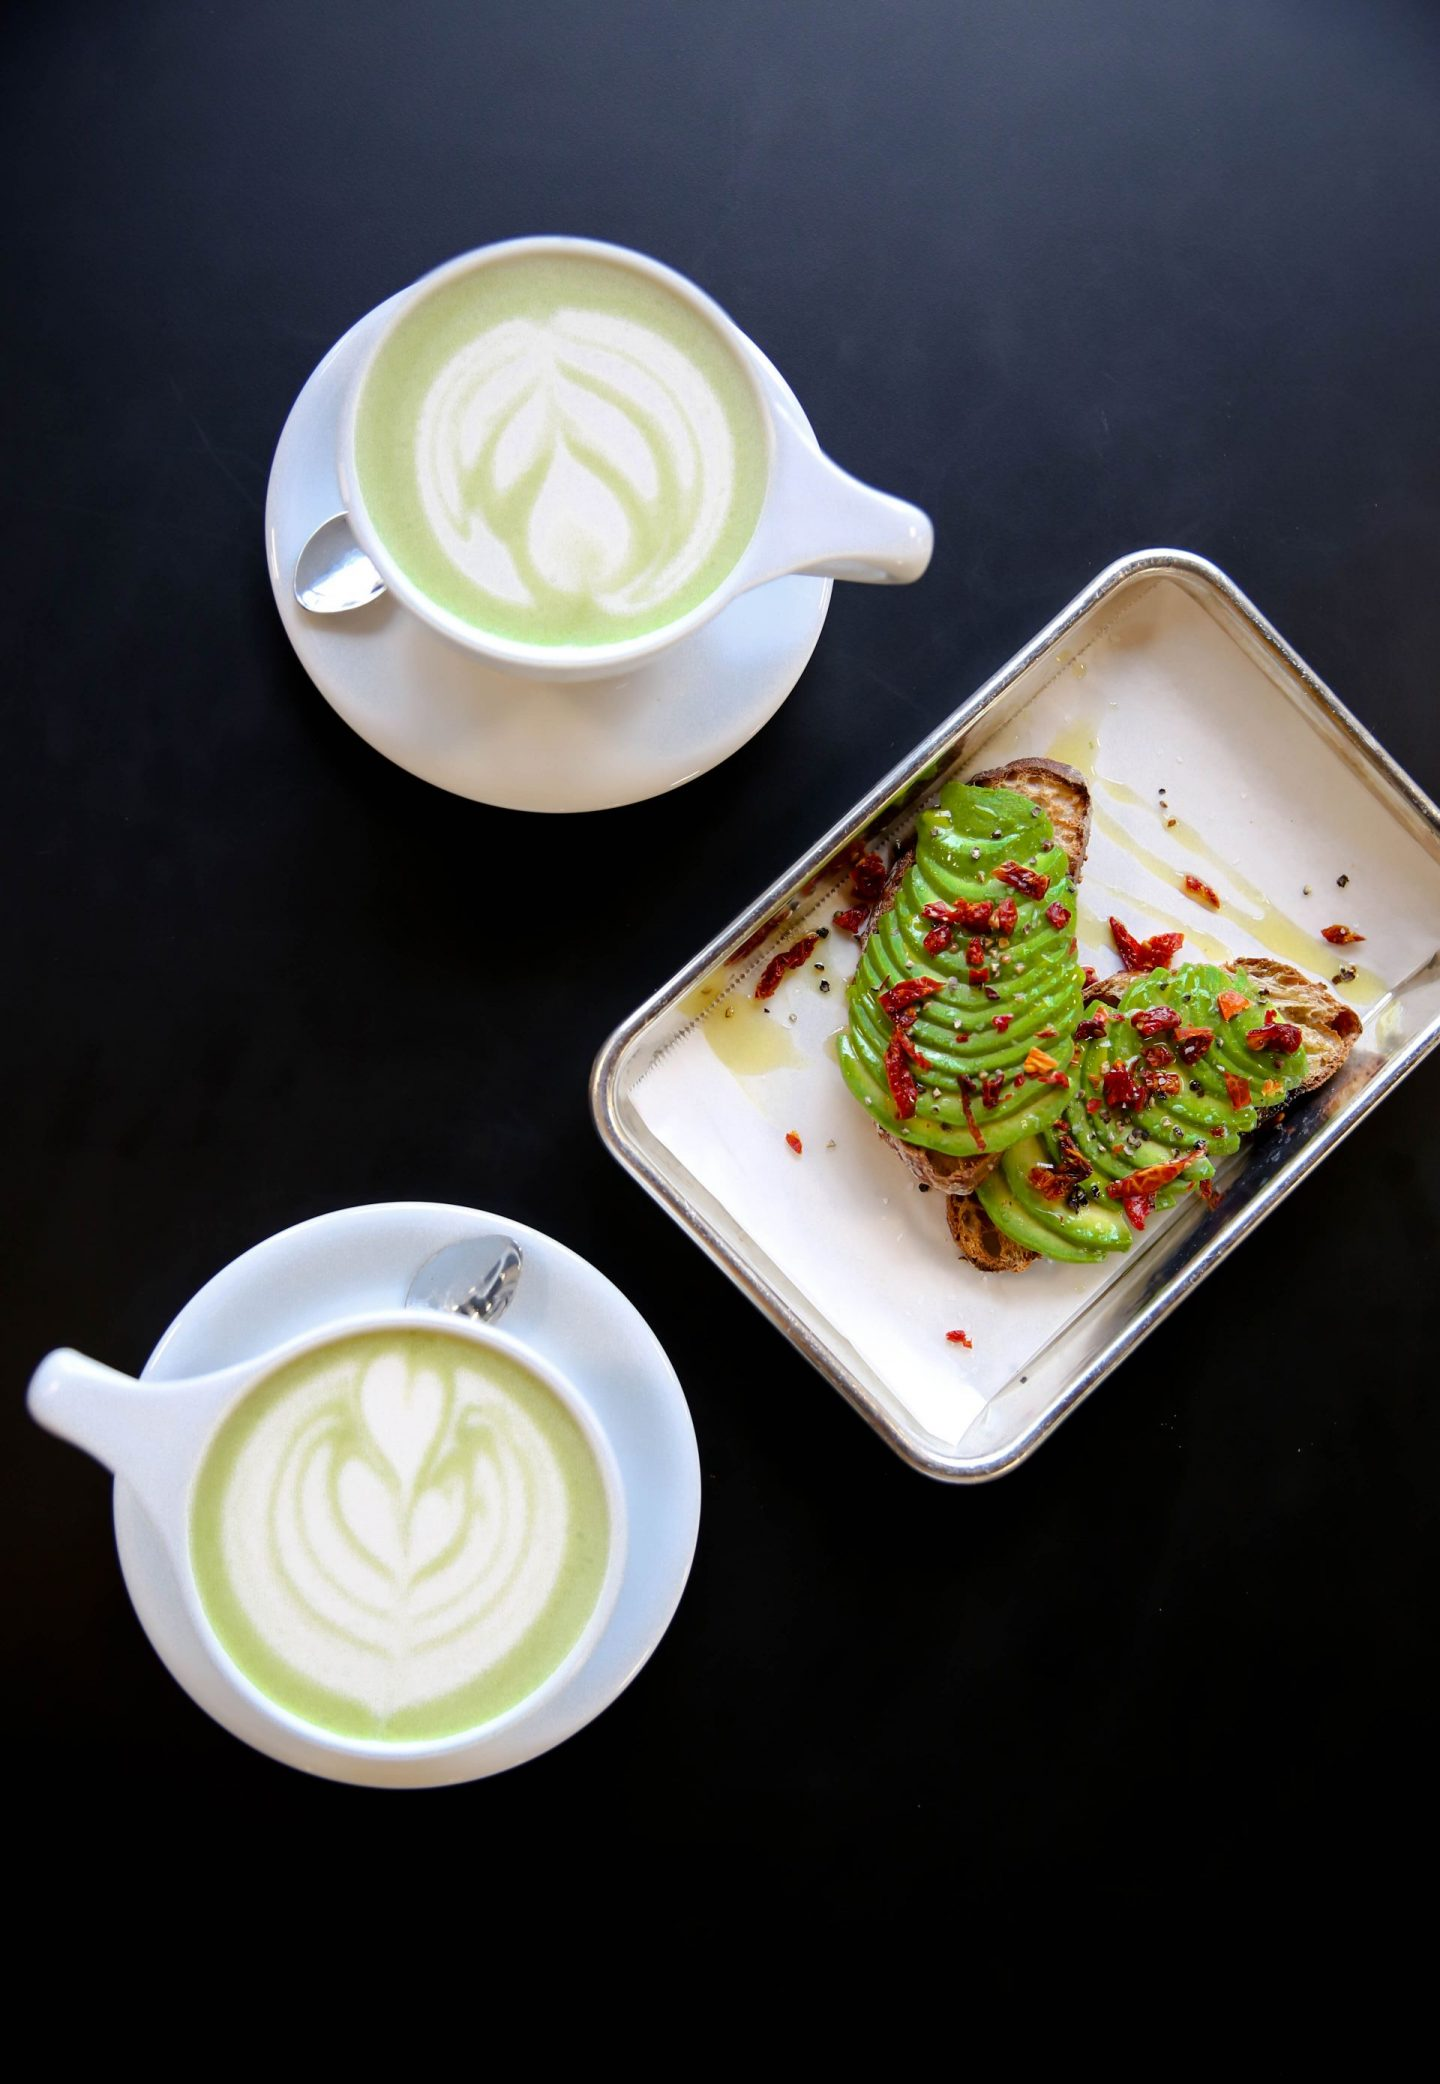 matcha latte - avocado toast - not just coffee - Charlotte, NC - Lauren Schwaiger Lifestyle Blog